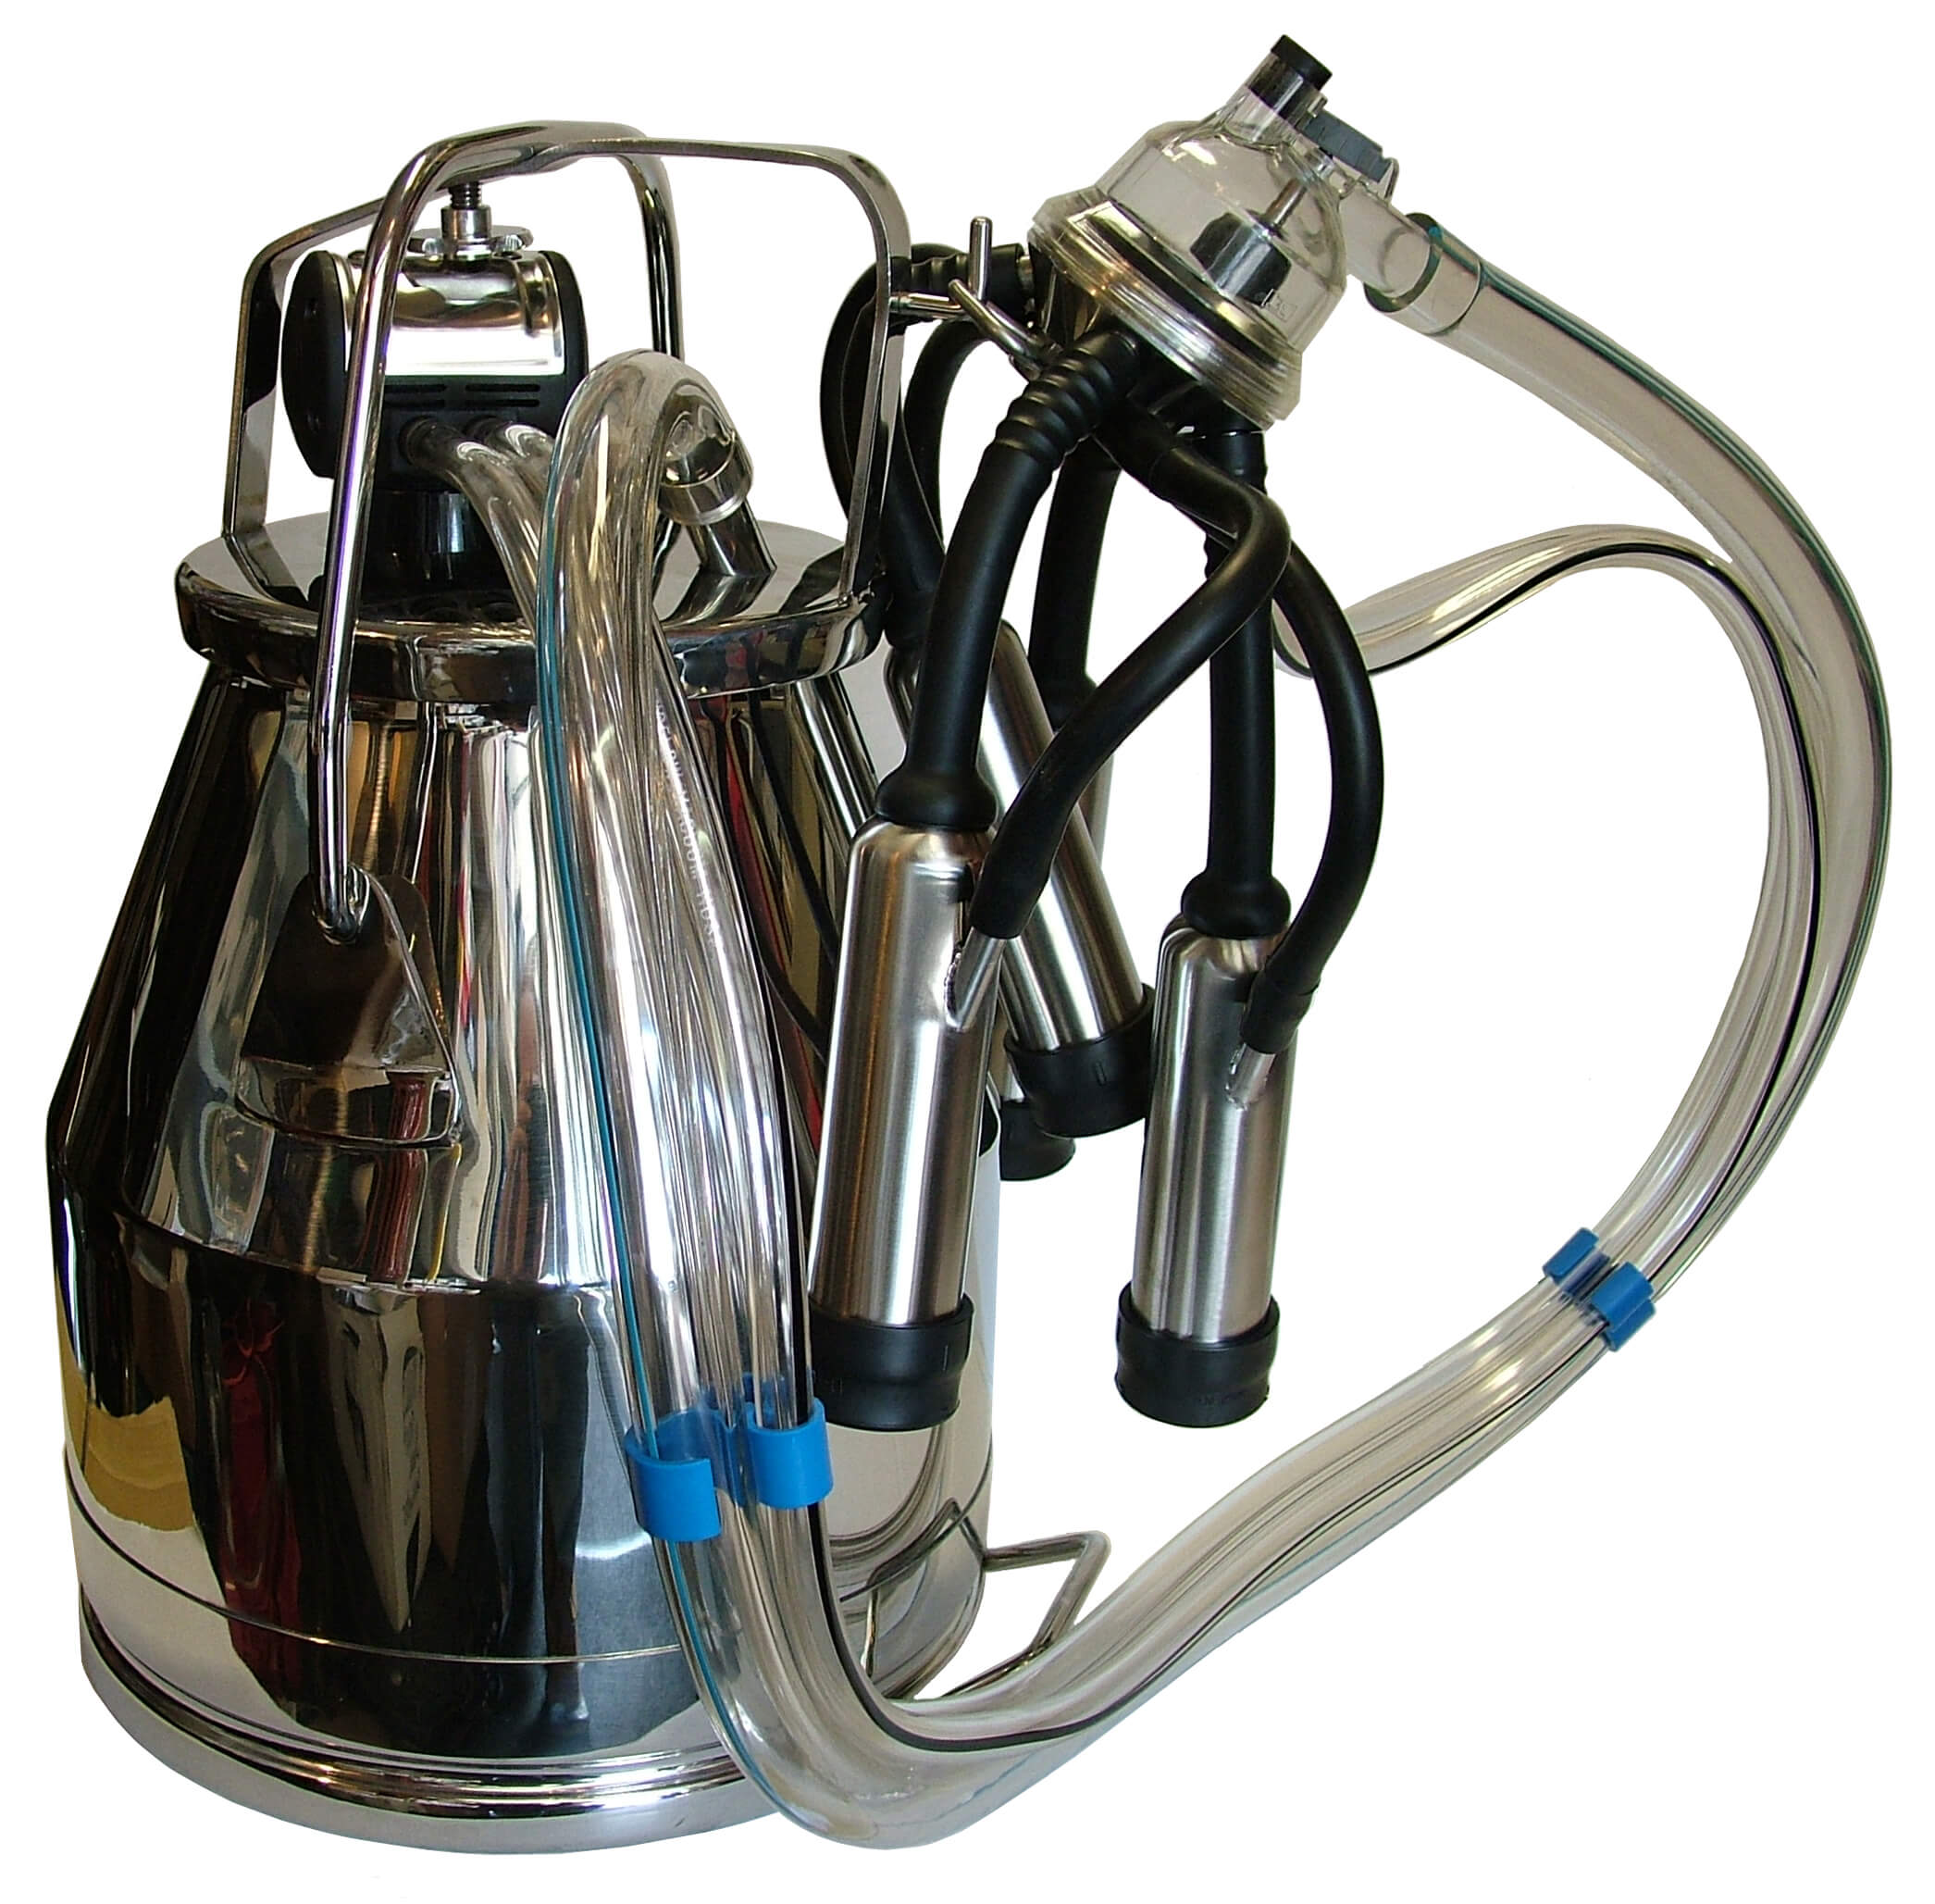 Bucket Assemblies for Cows